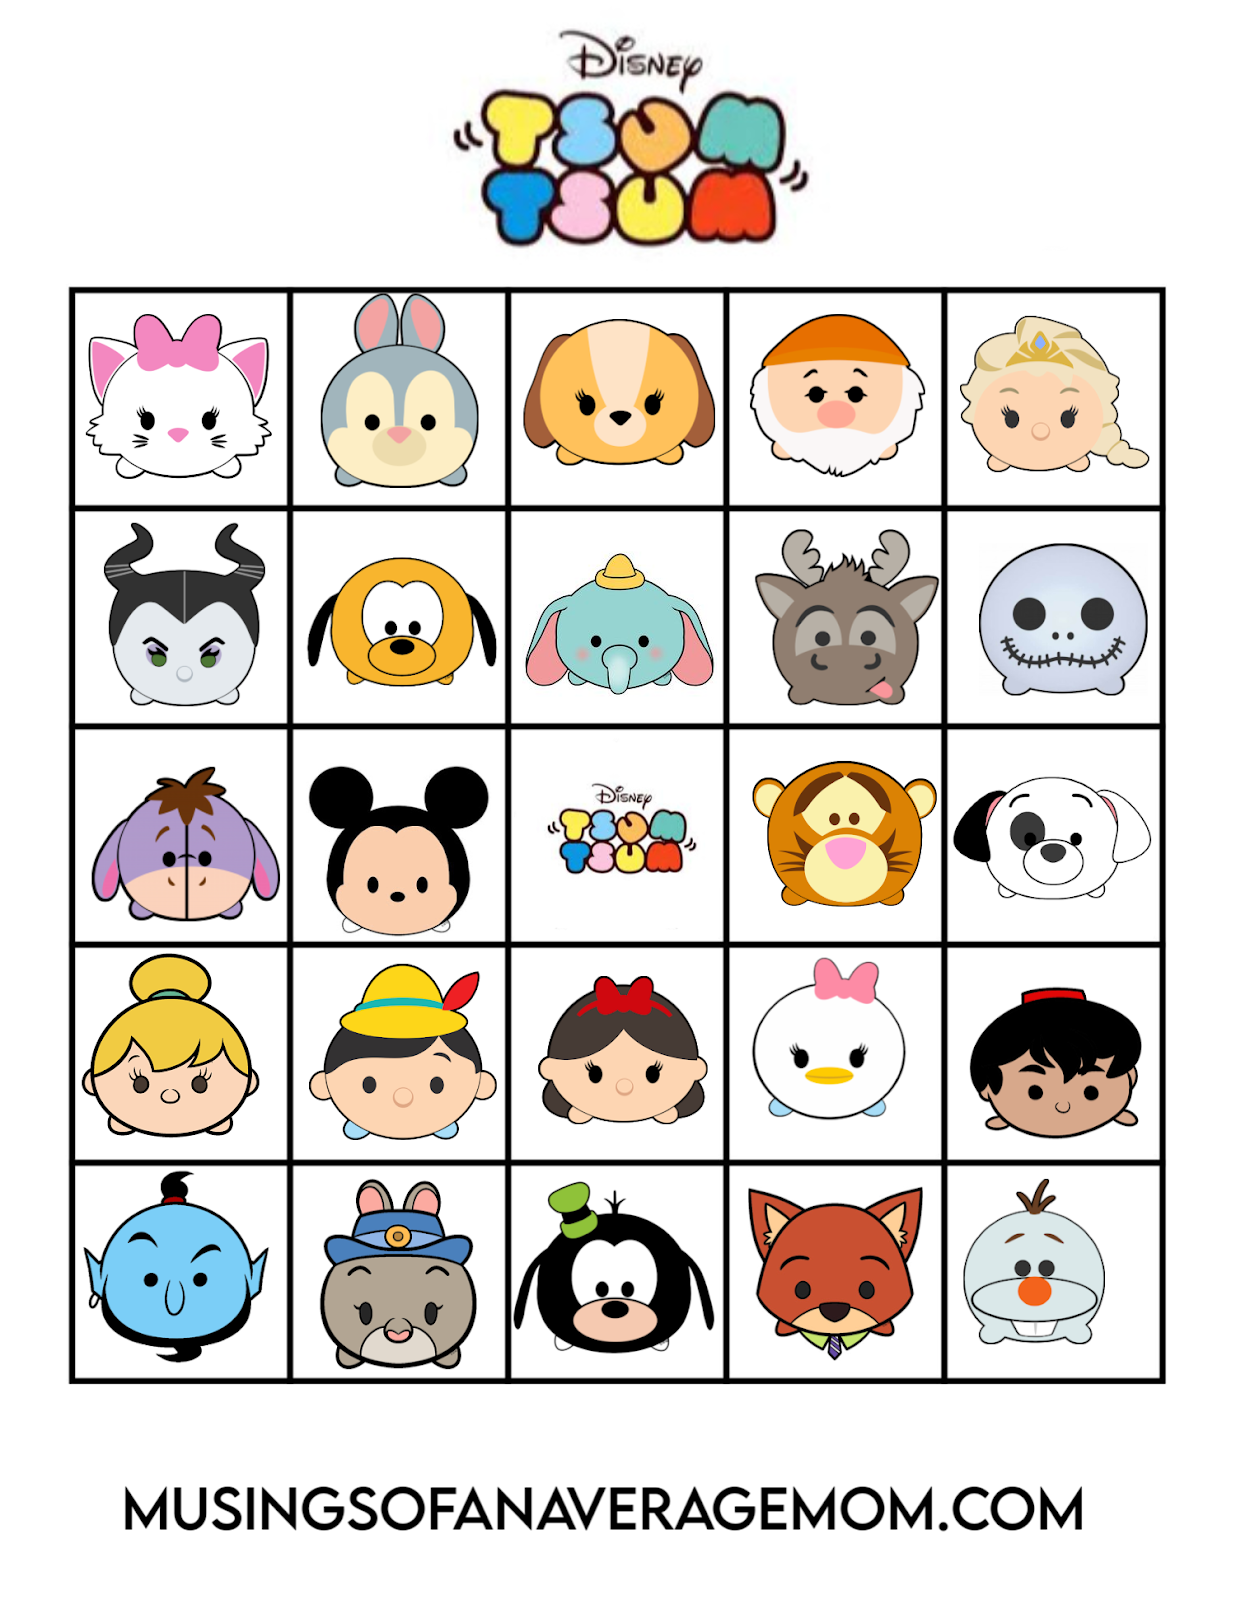 Tsum Tsum Bingo 2 : bingo, Musings, Average, Disney, Bingo, Printable